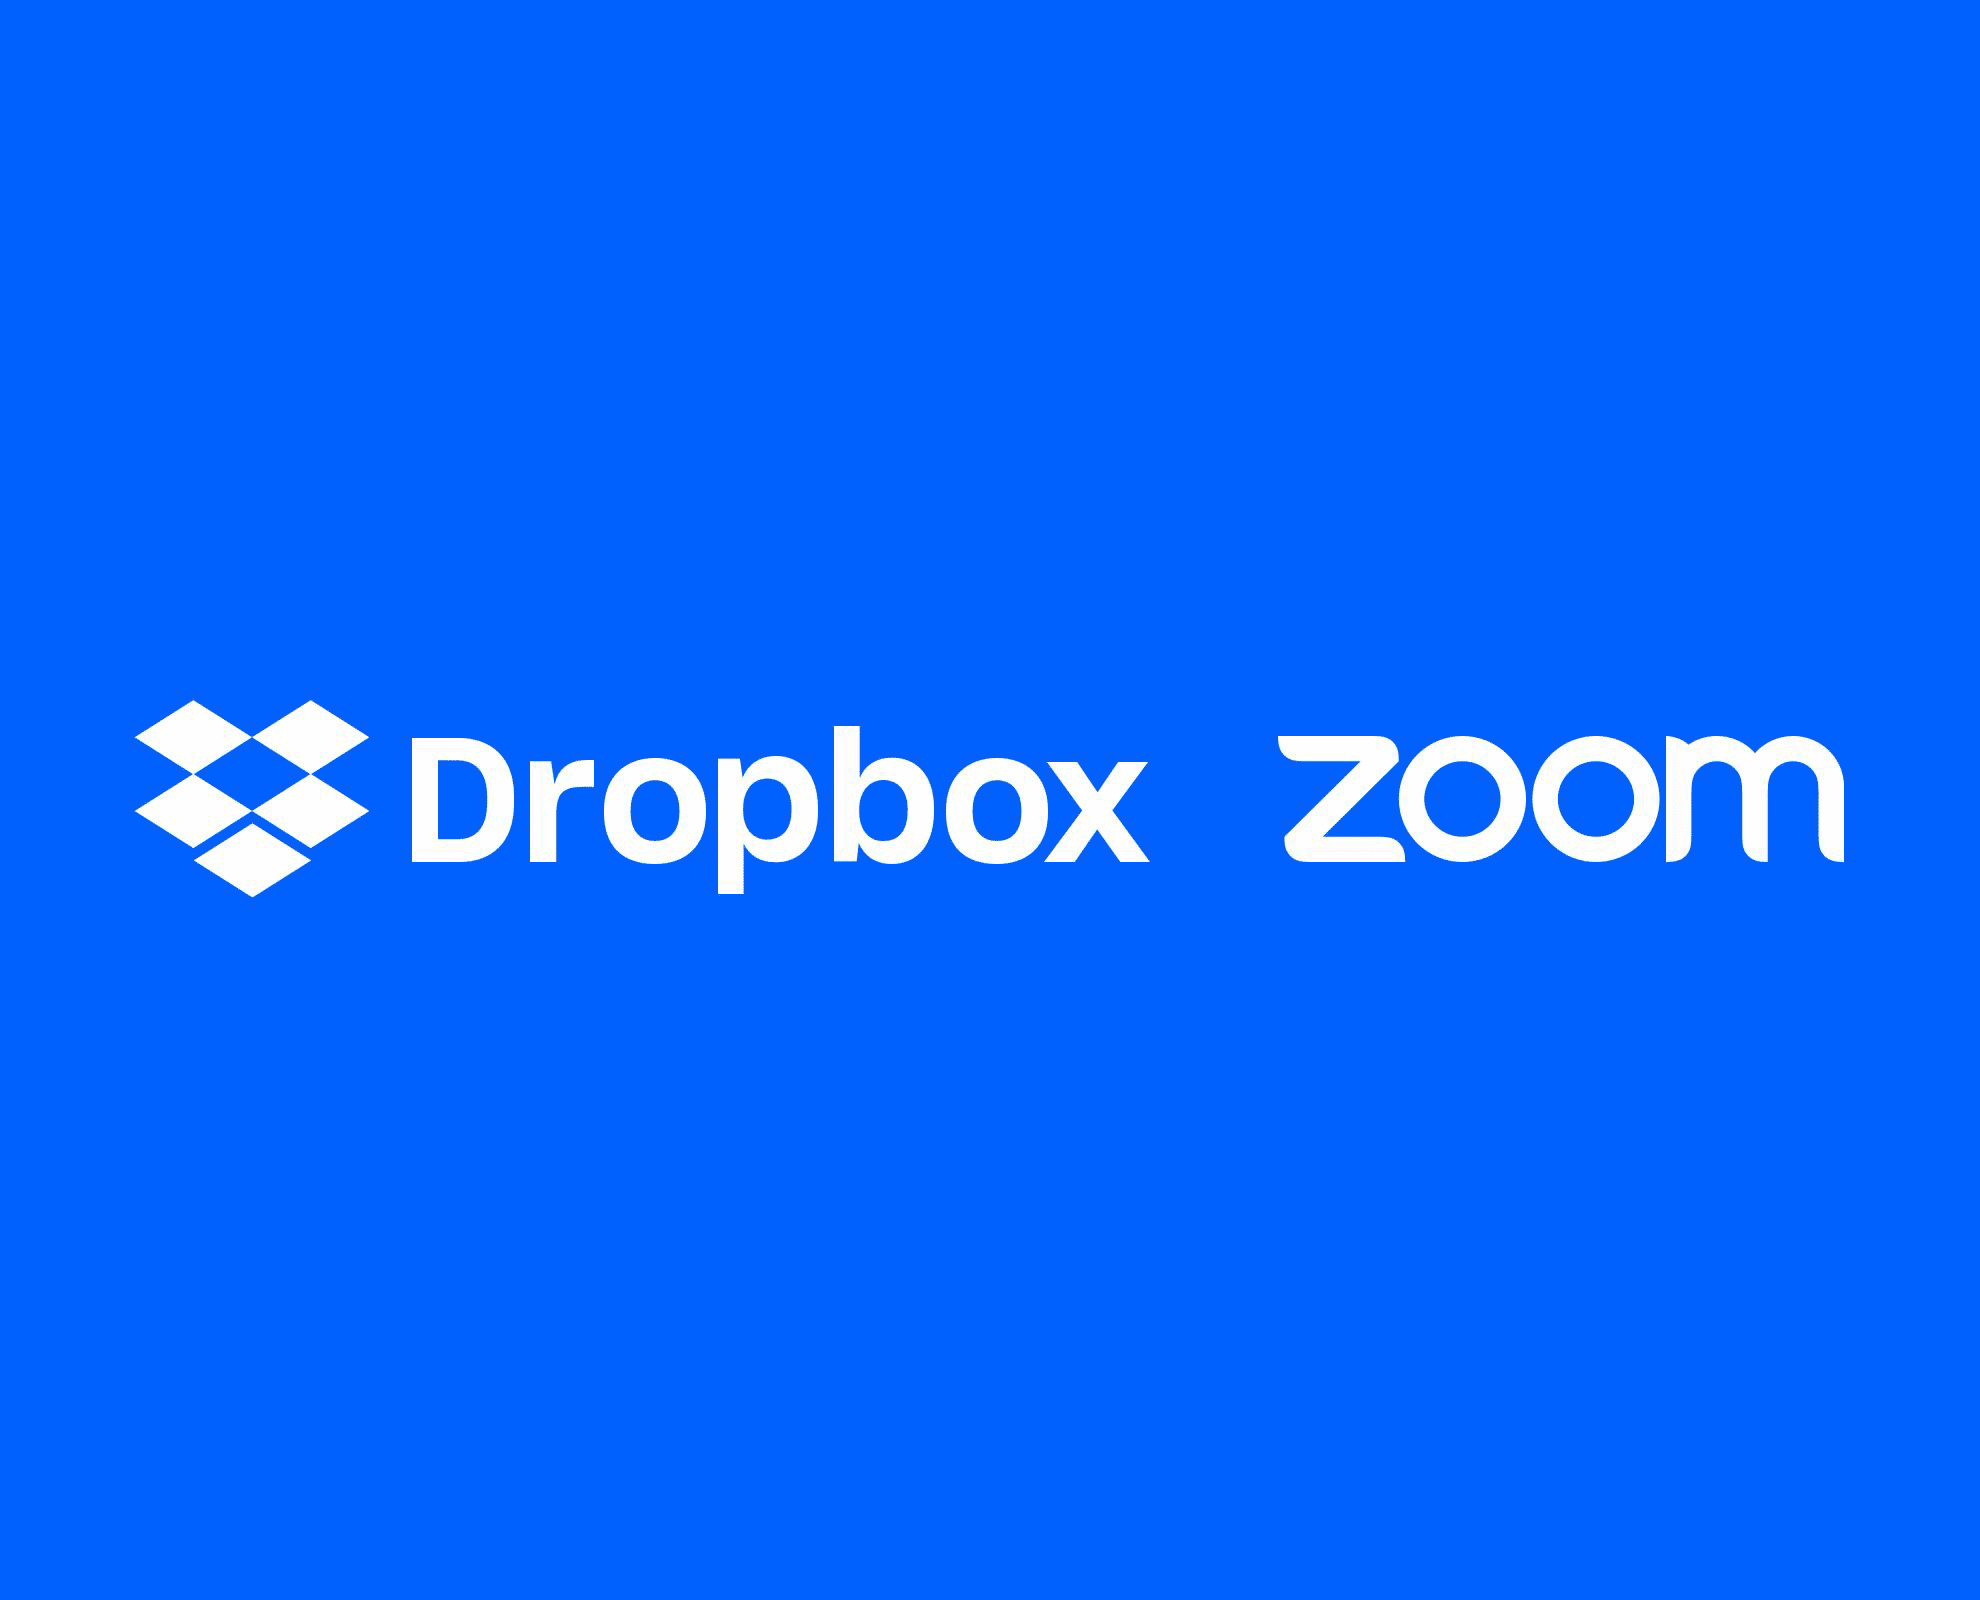 Dropbox and Zoom logos